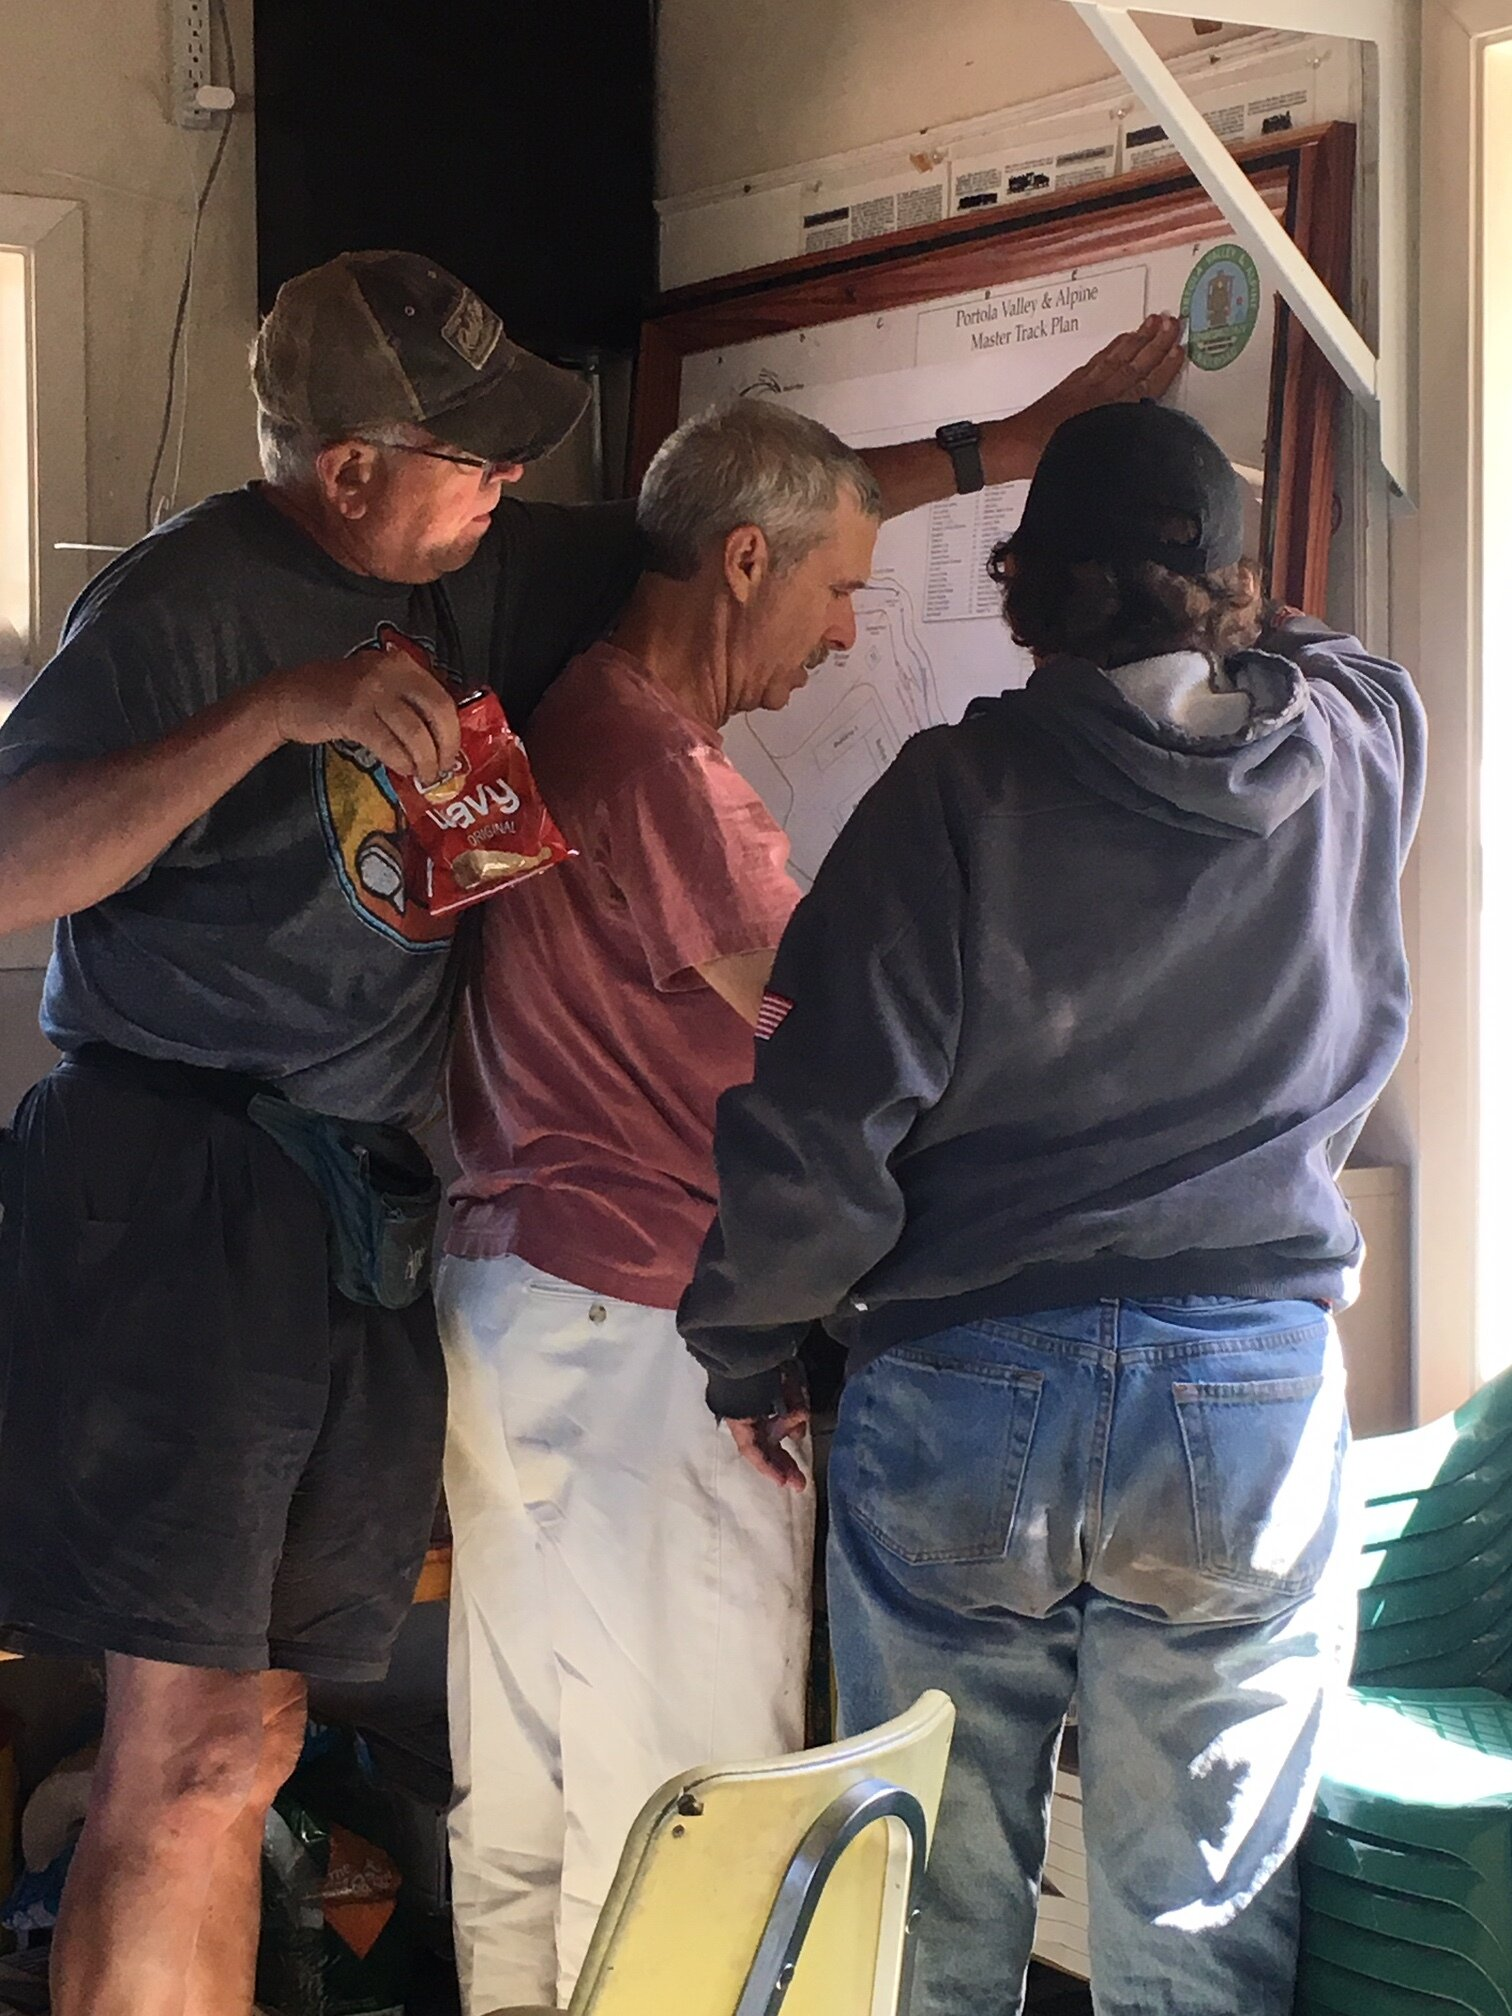 How many people does it take to hang an updated map?